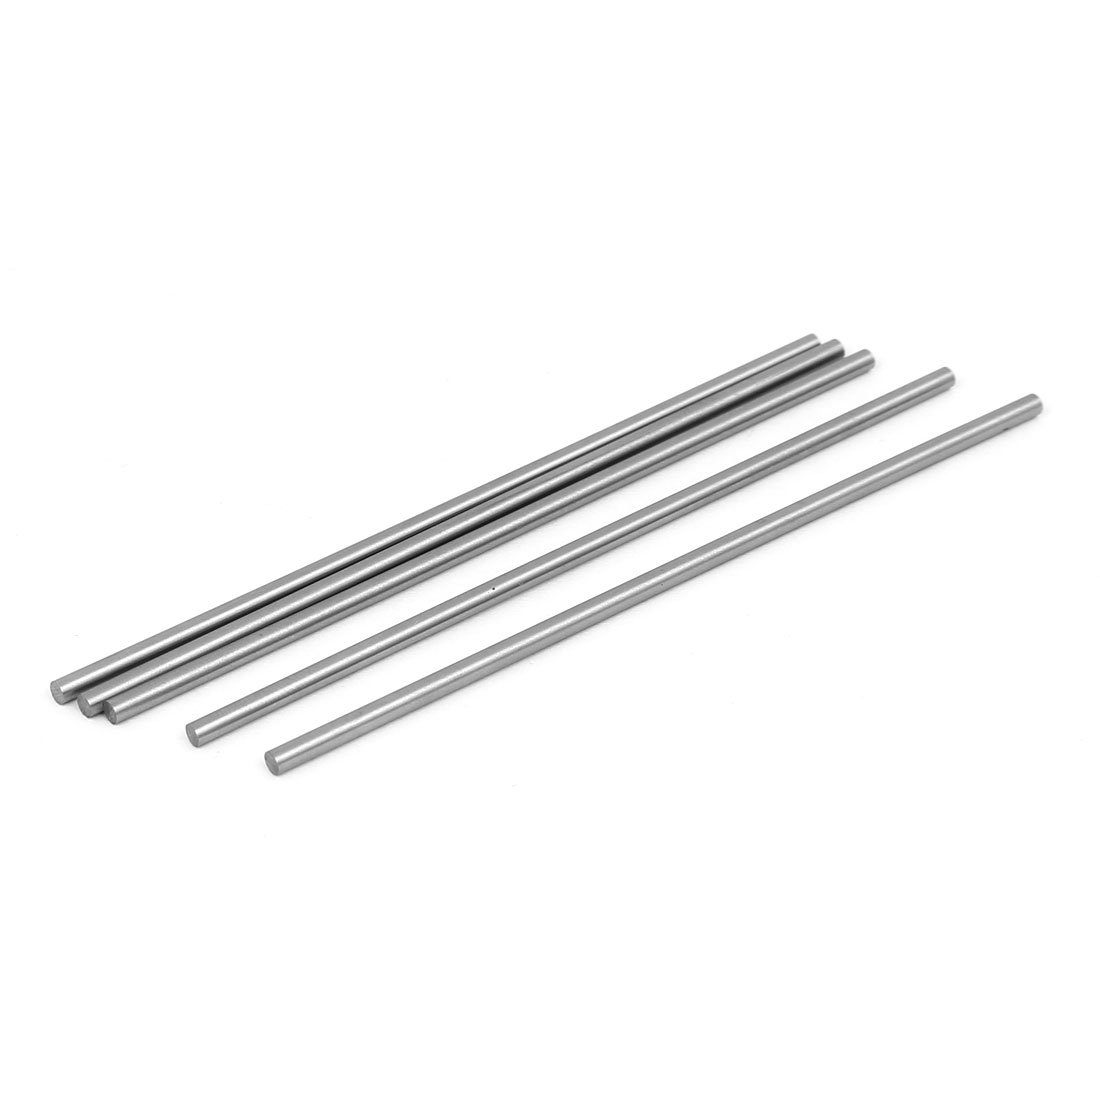 2.5mm Dia 100mm Length HSS Round Shaft Rod Bar Lathe Tools Gray 5pcs